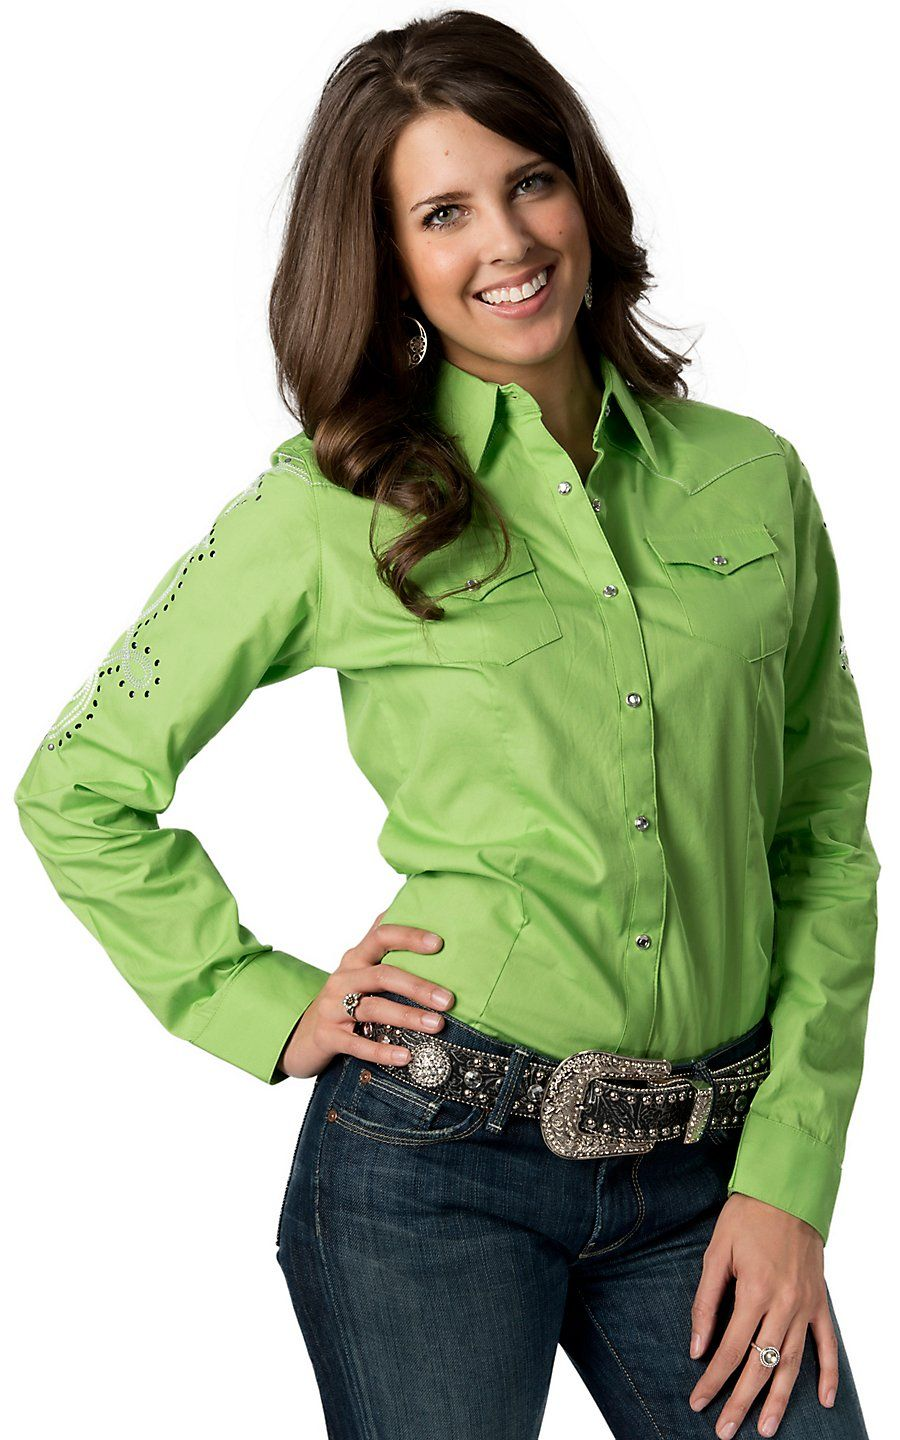 Shop for lime green shirt online at Target. Free shipping on purchases over $35 and save 5% every day with your Target REDcard.